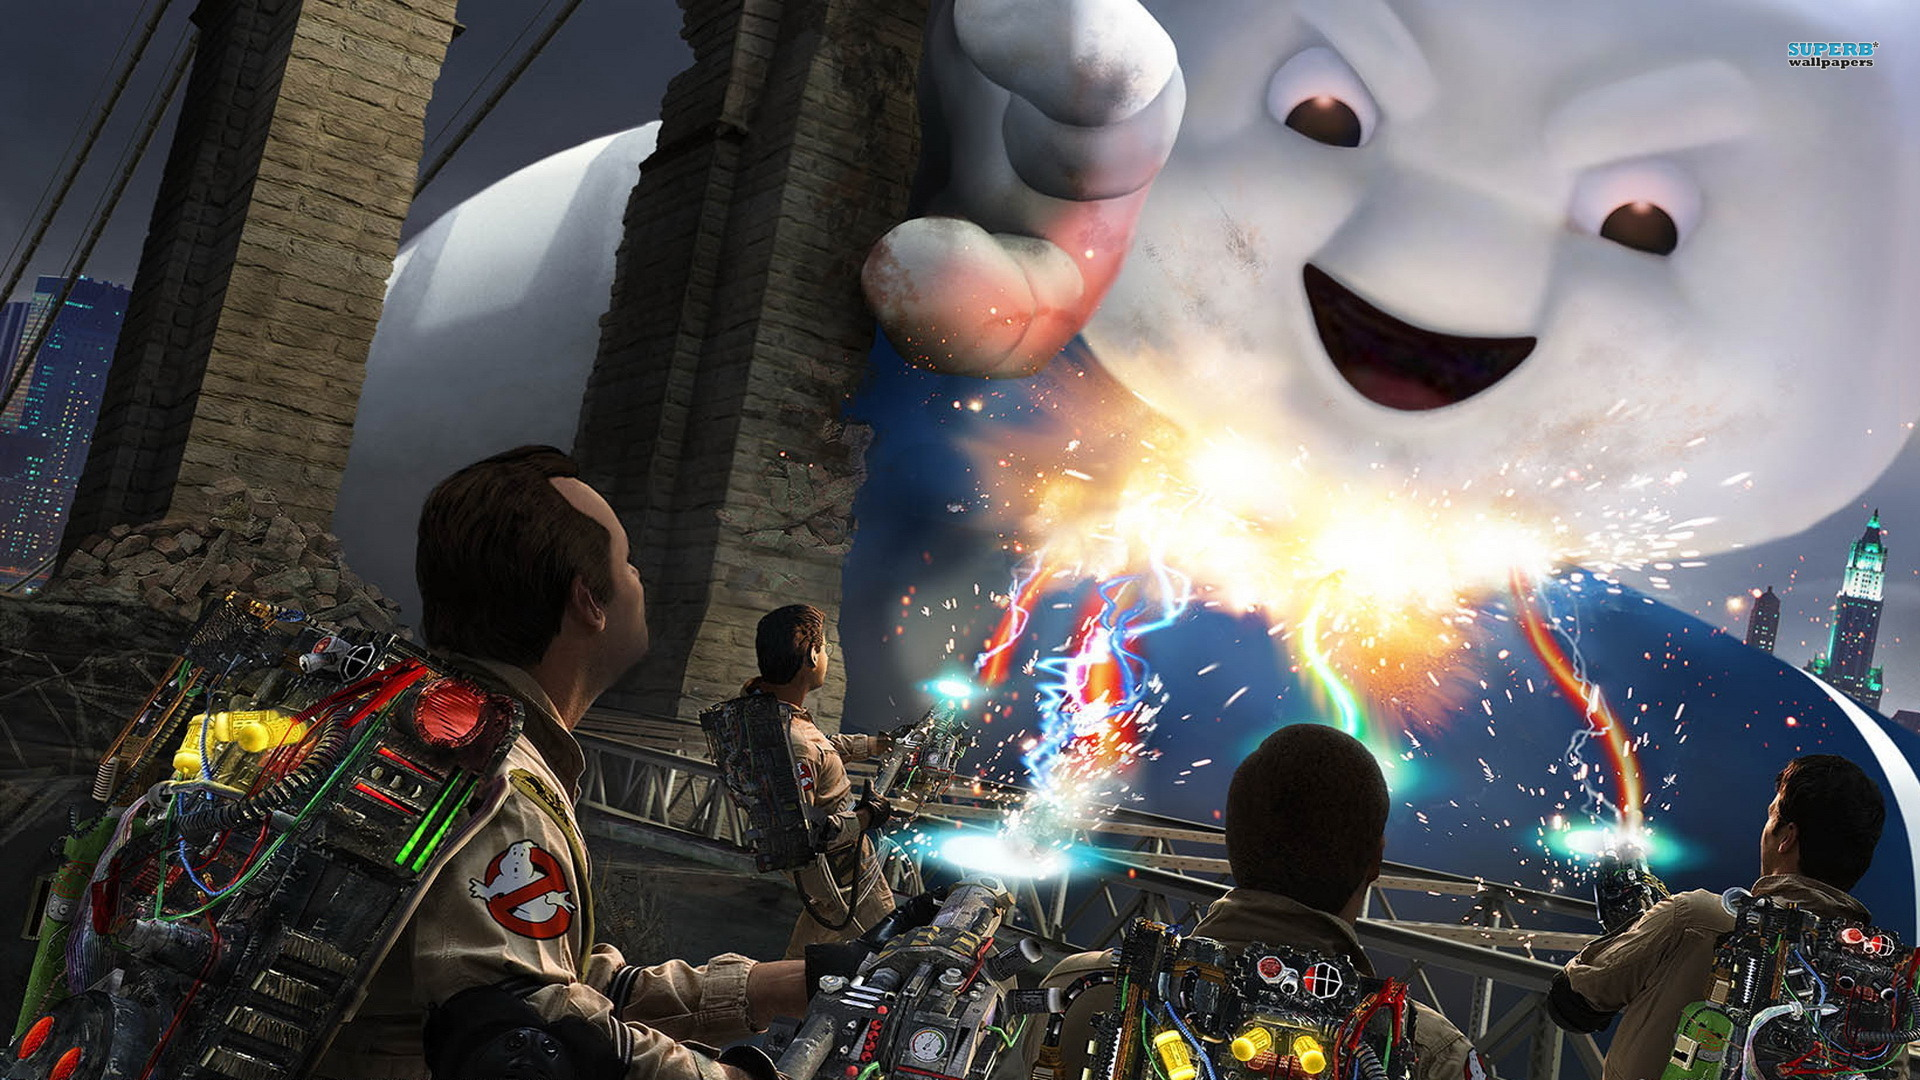 Cool Video Game Wallpapers Xghostbusters The Video Game 1920x1080